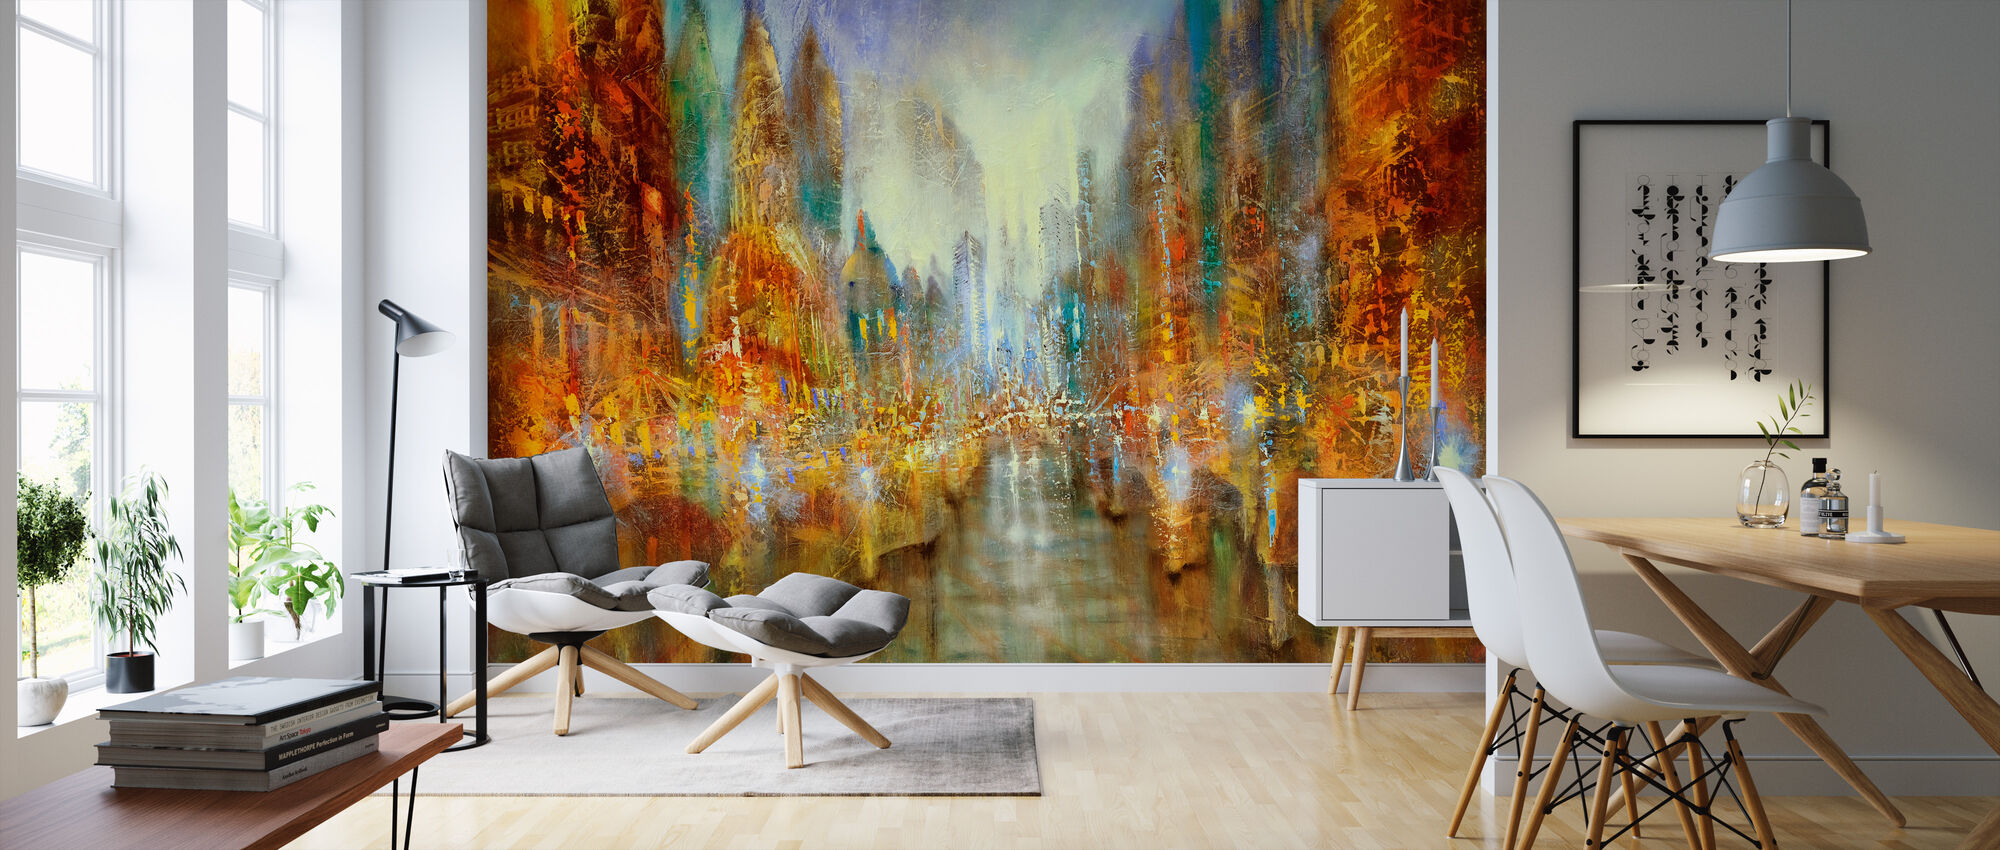 City of Lights - Wallpaper - Living Room